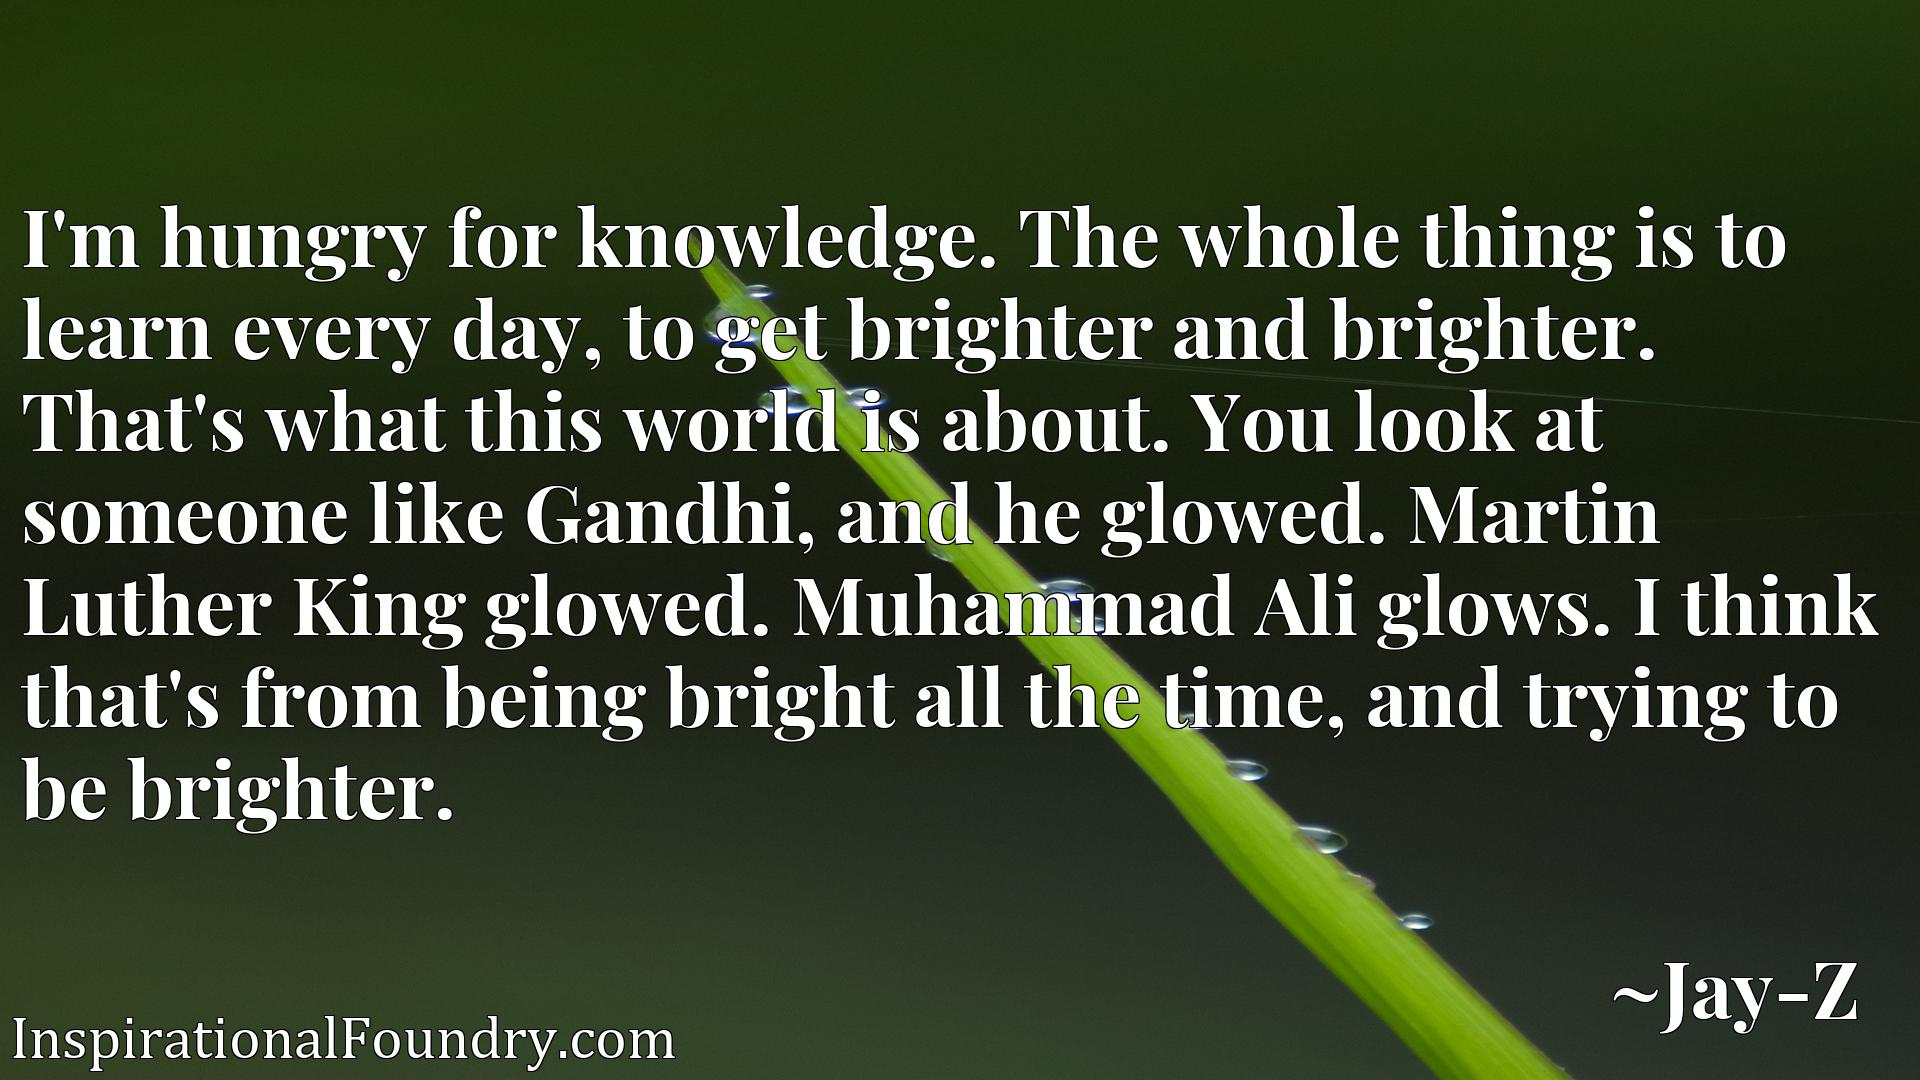 I'm hungry for knowledge. The whole thing is to learn every day, to get brighter and brighter. That's what this world is about. You look at someone like Gandhi, and he glowed. Martin Luther King glowed. Muhammad Ali glows. I think that's from being bright all the time, and trying to be brighter.